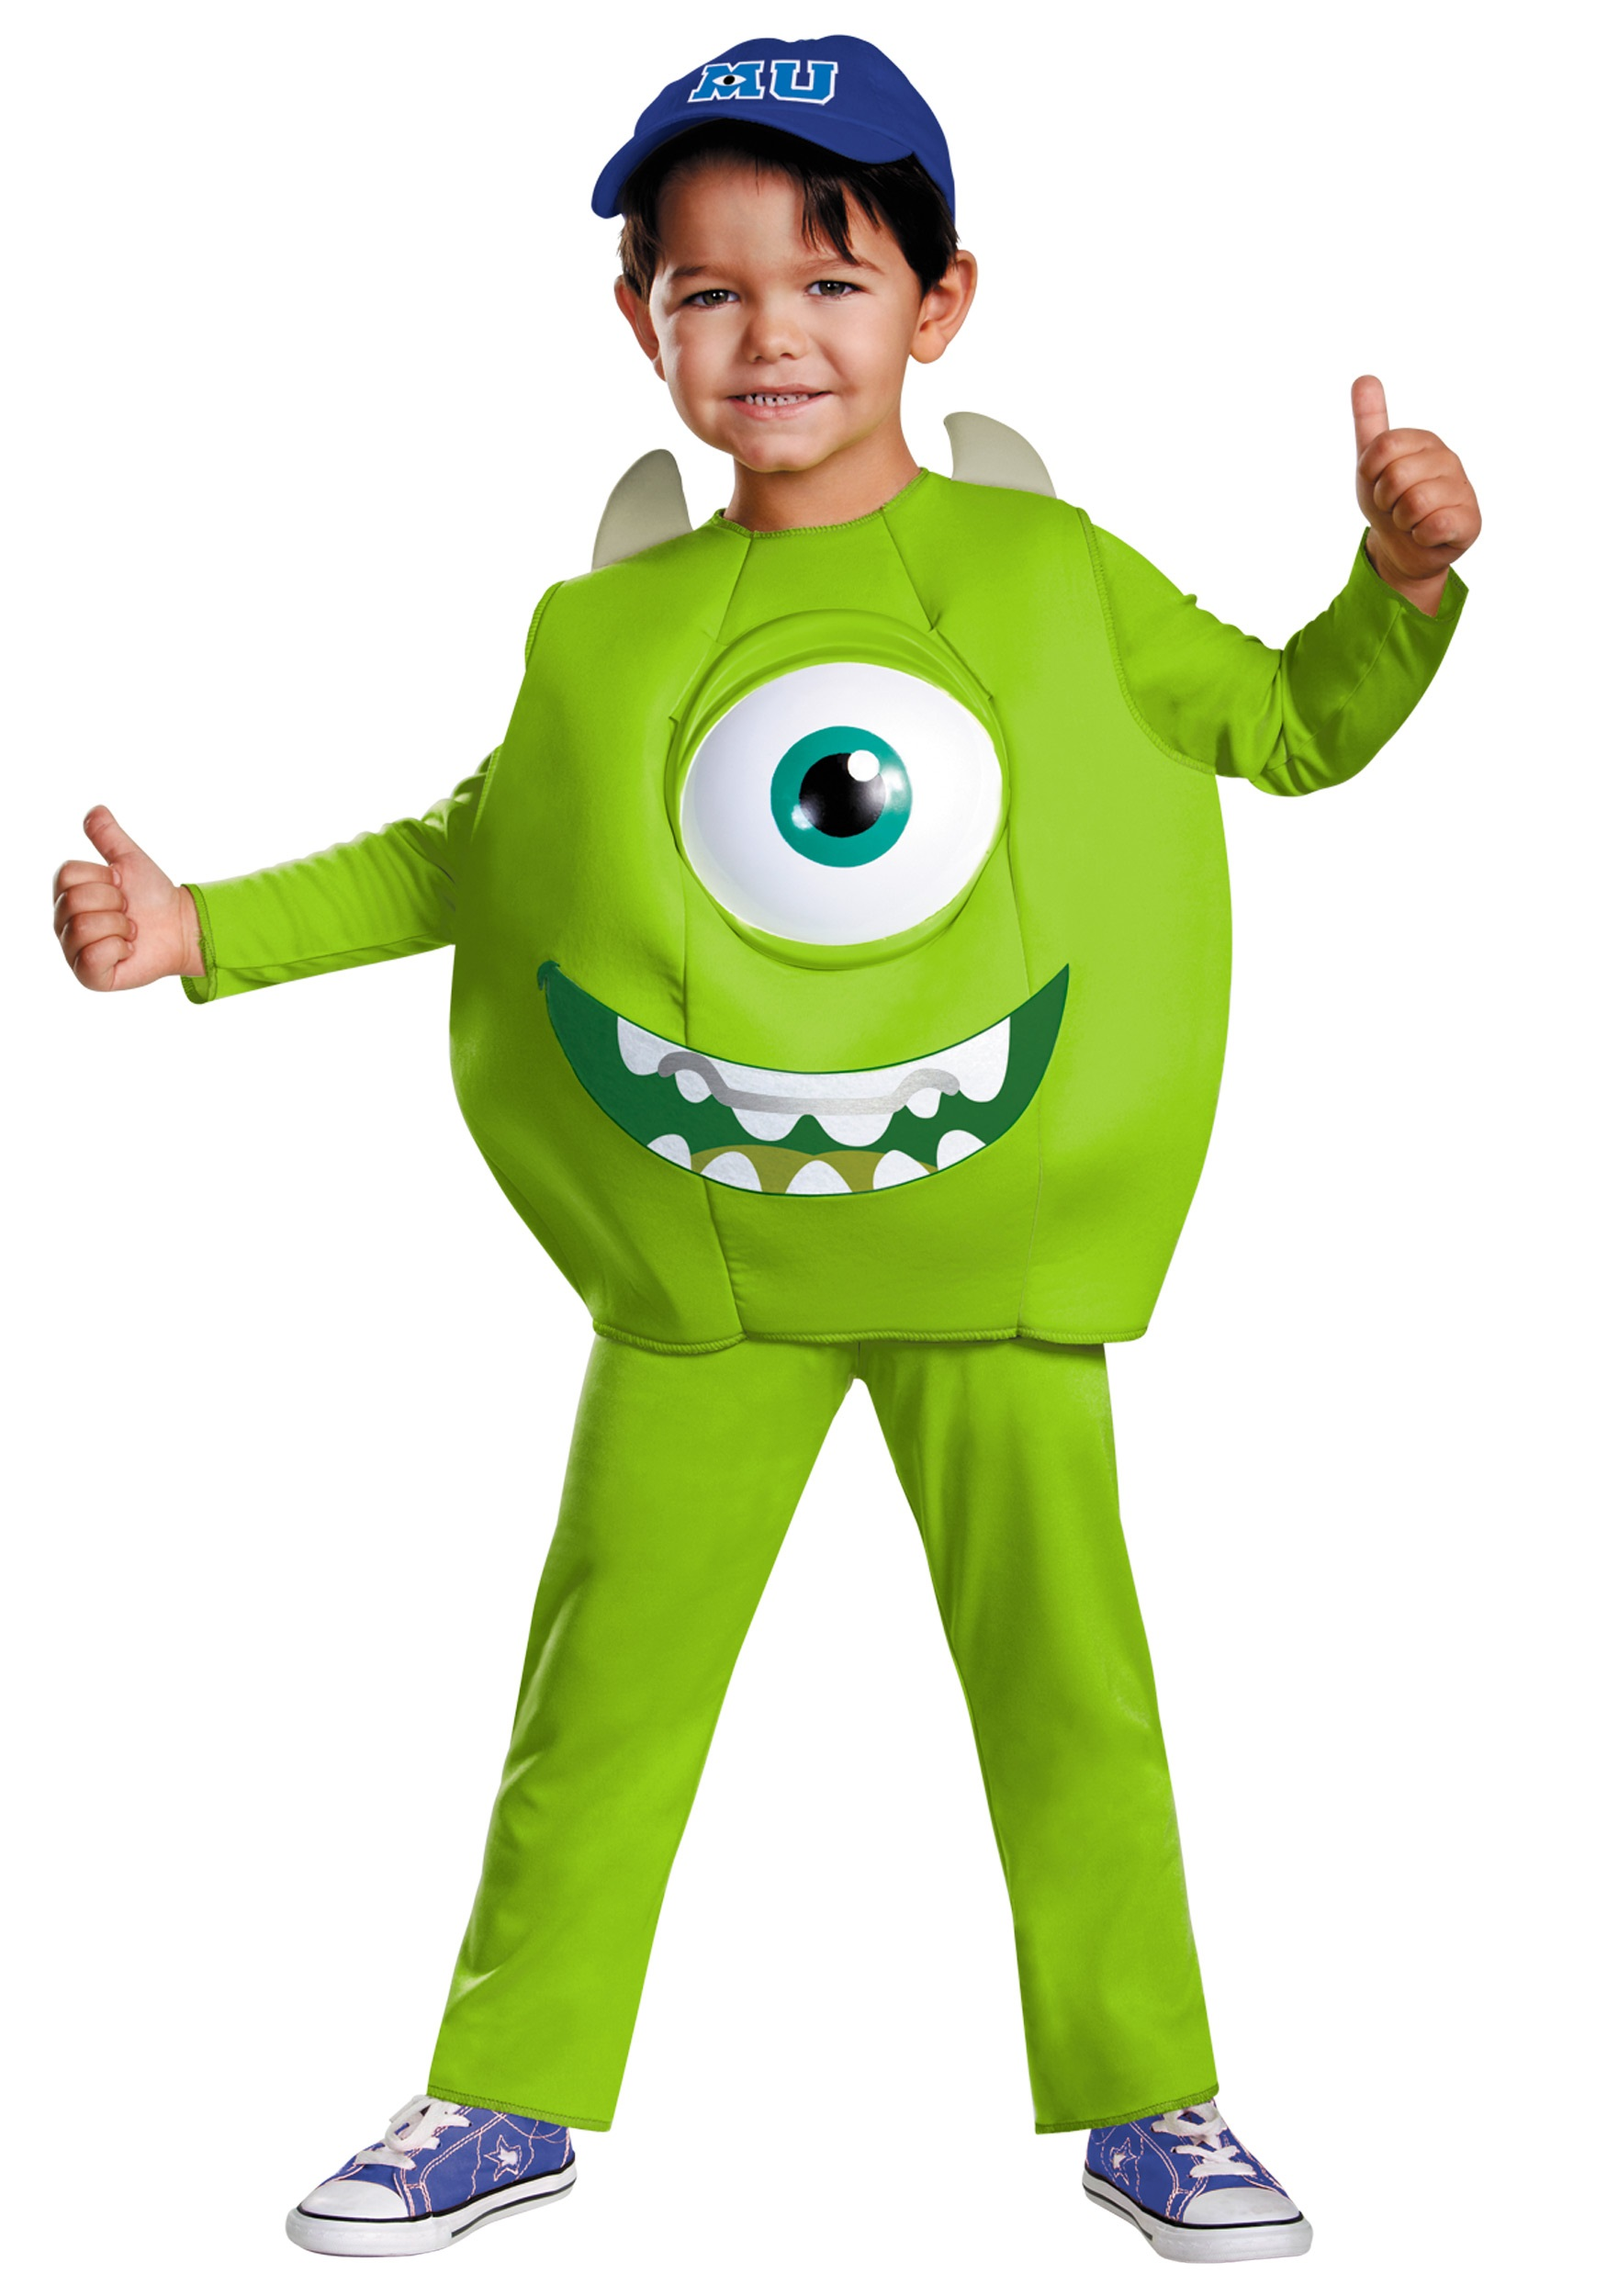 ee278cb77181 mike-toddler-deluxe-costume.jpg